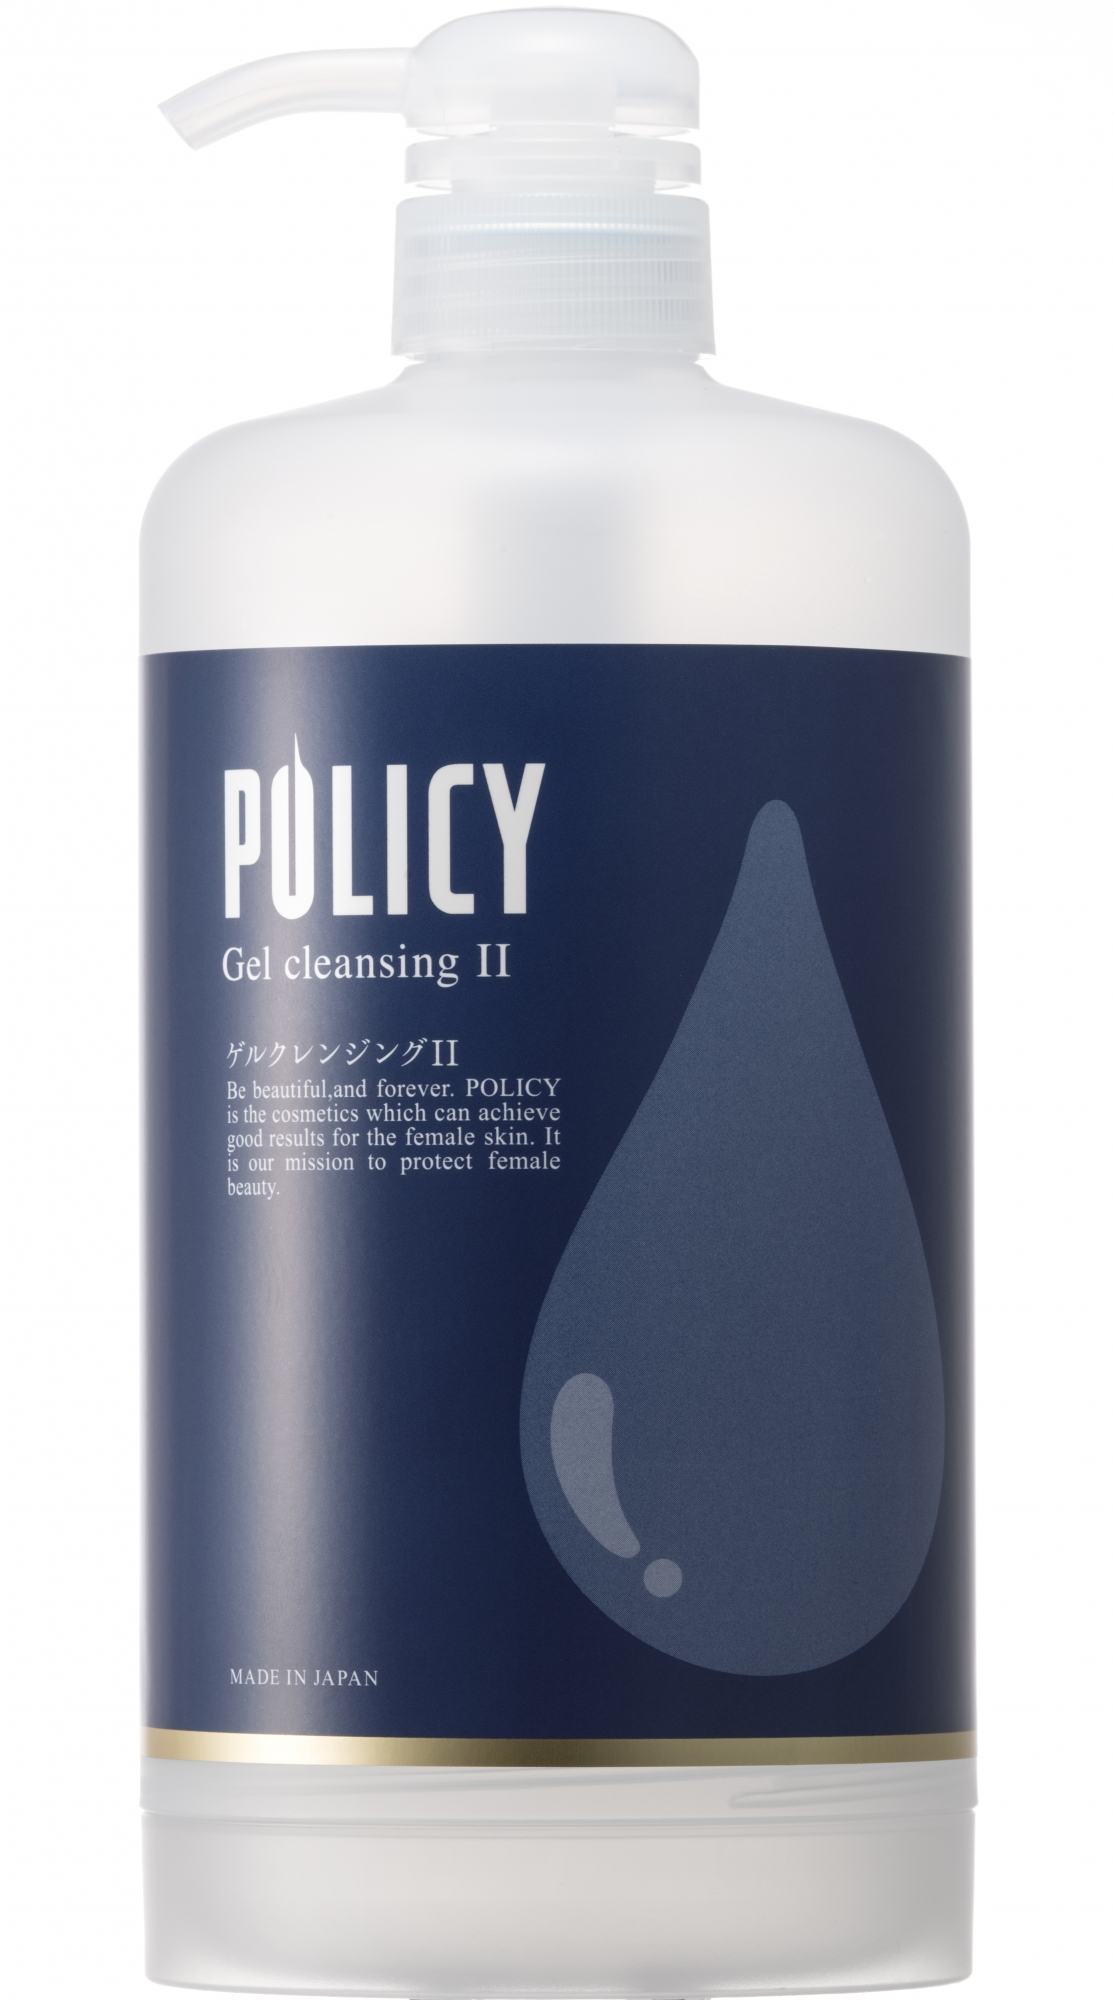 Refill bottle for POLICY GEL CLEANSINGⅡ